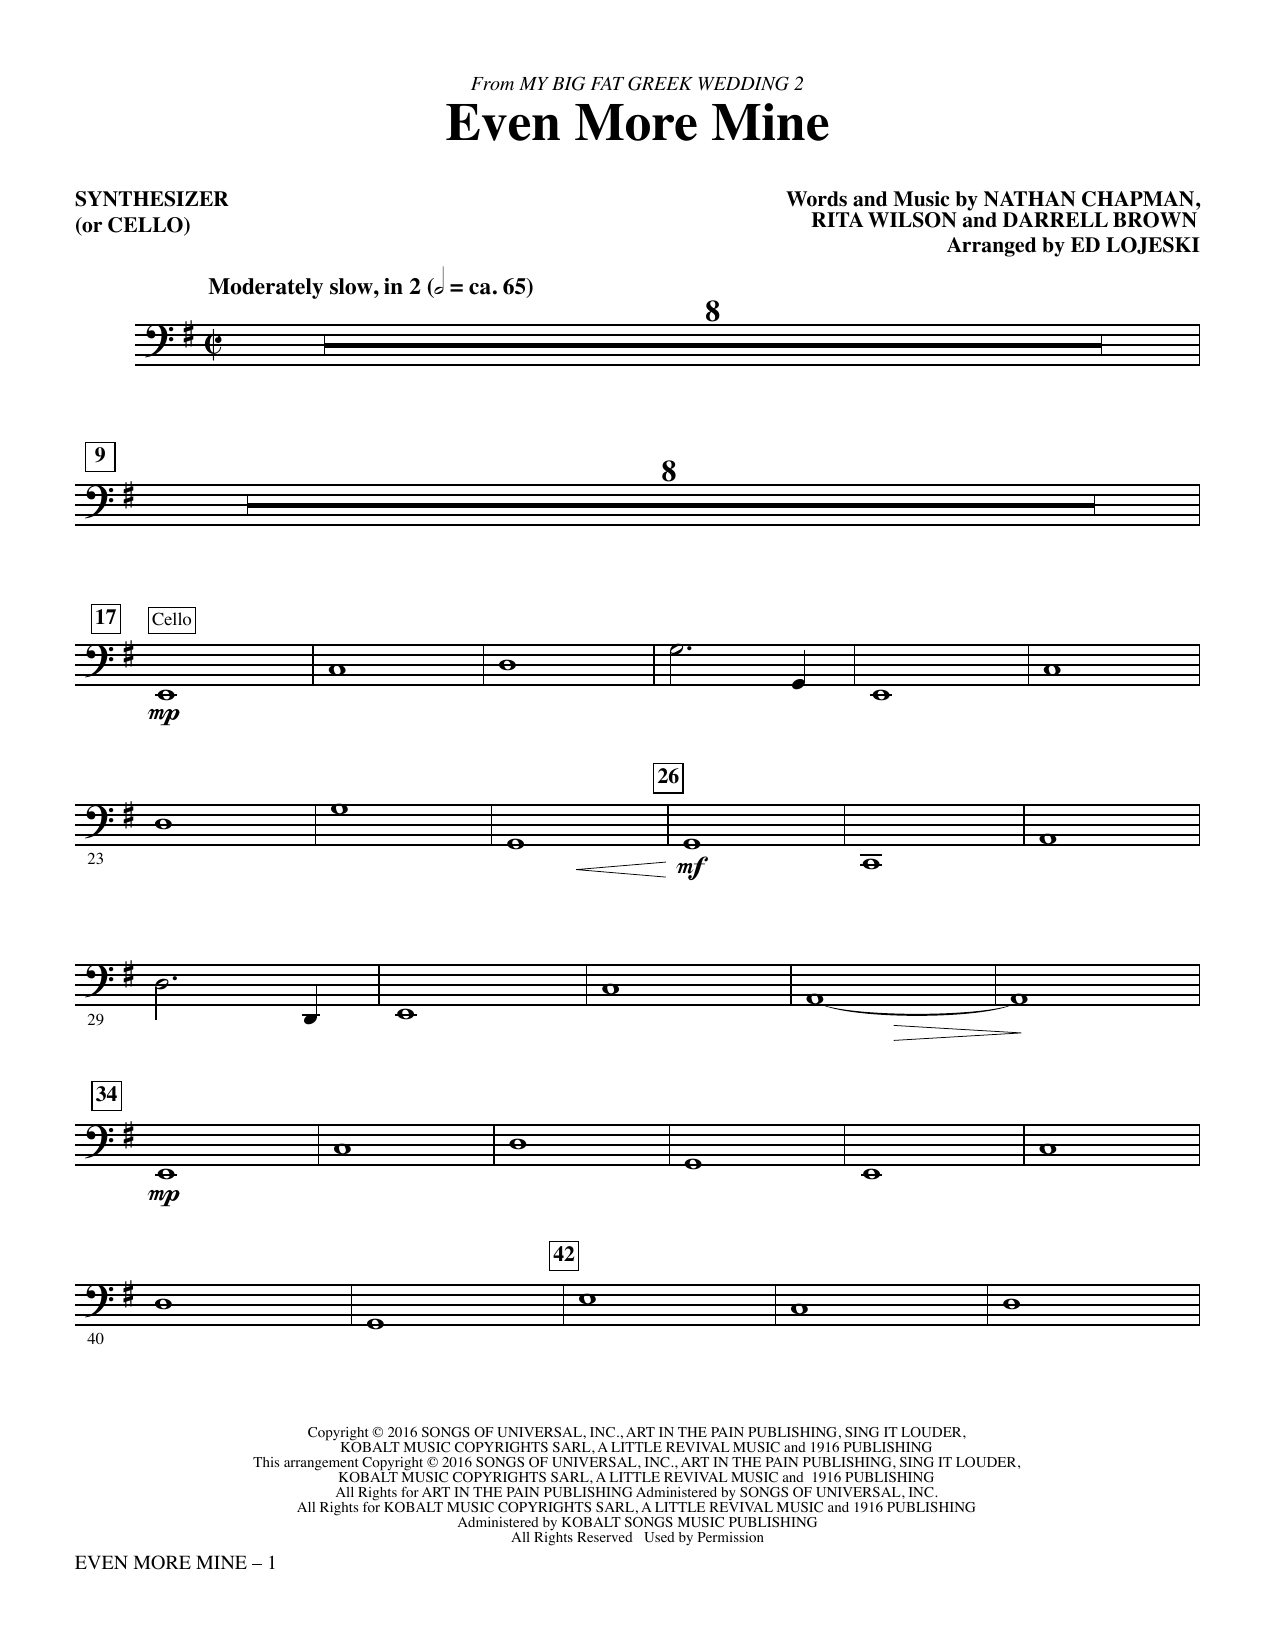 Even More Mine (complete set of parts) sheet music for orchestra/band by Ed Lojeski, Darrell Brown and Rita Wilson. Score Image Preview.